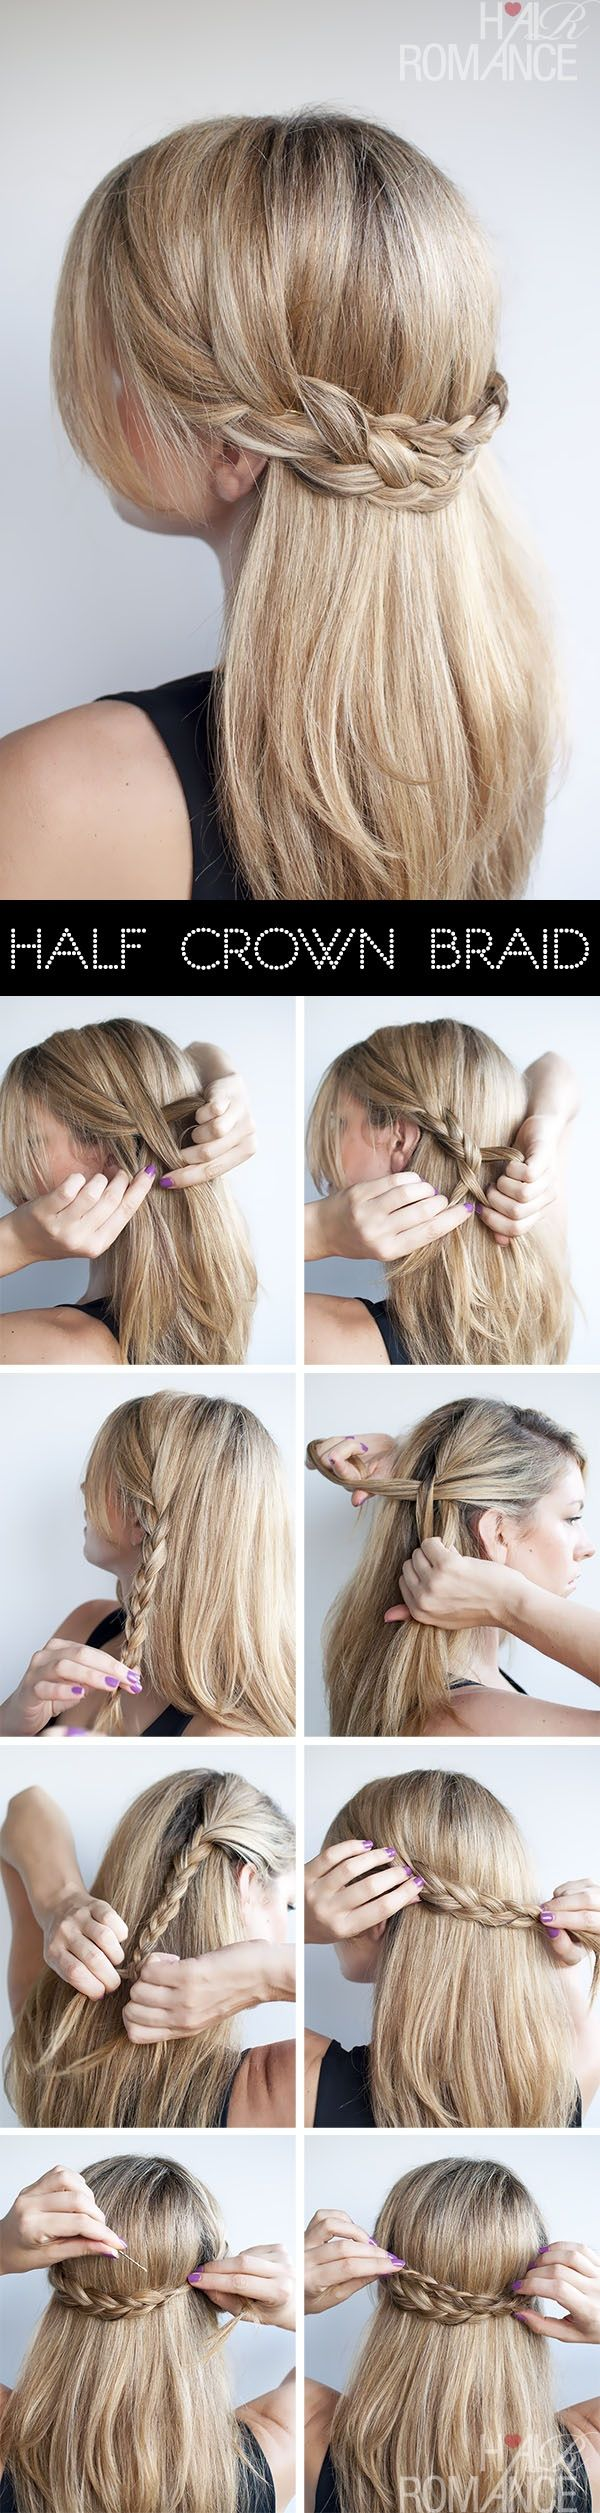 This is a half crown braid that is easy to do and a great running late hairstyle.